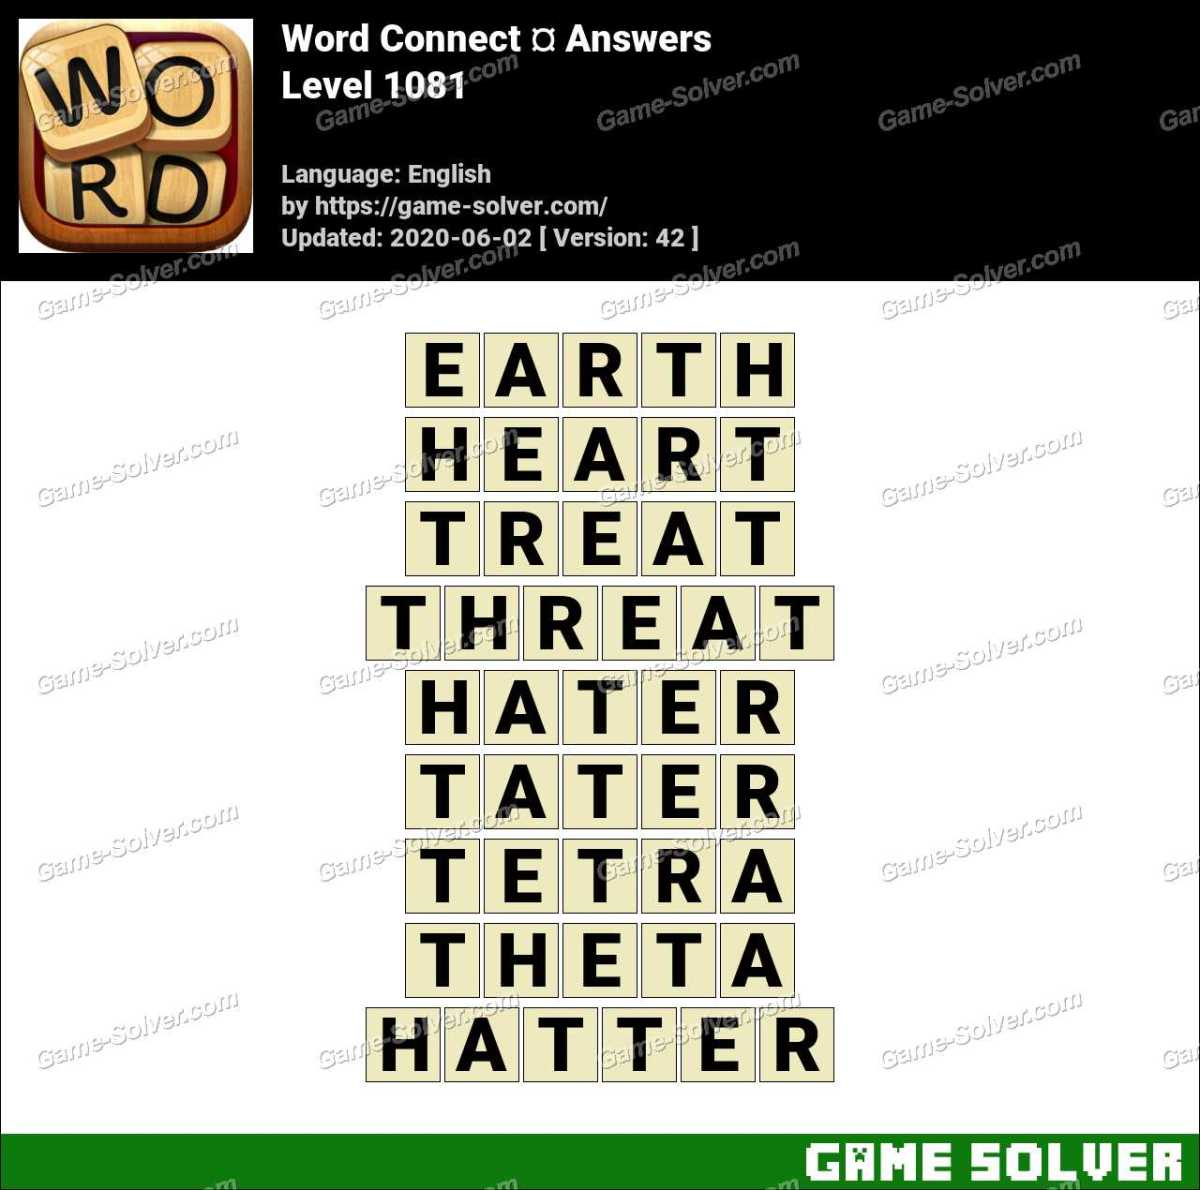 Word Connect Level 1081 Answers